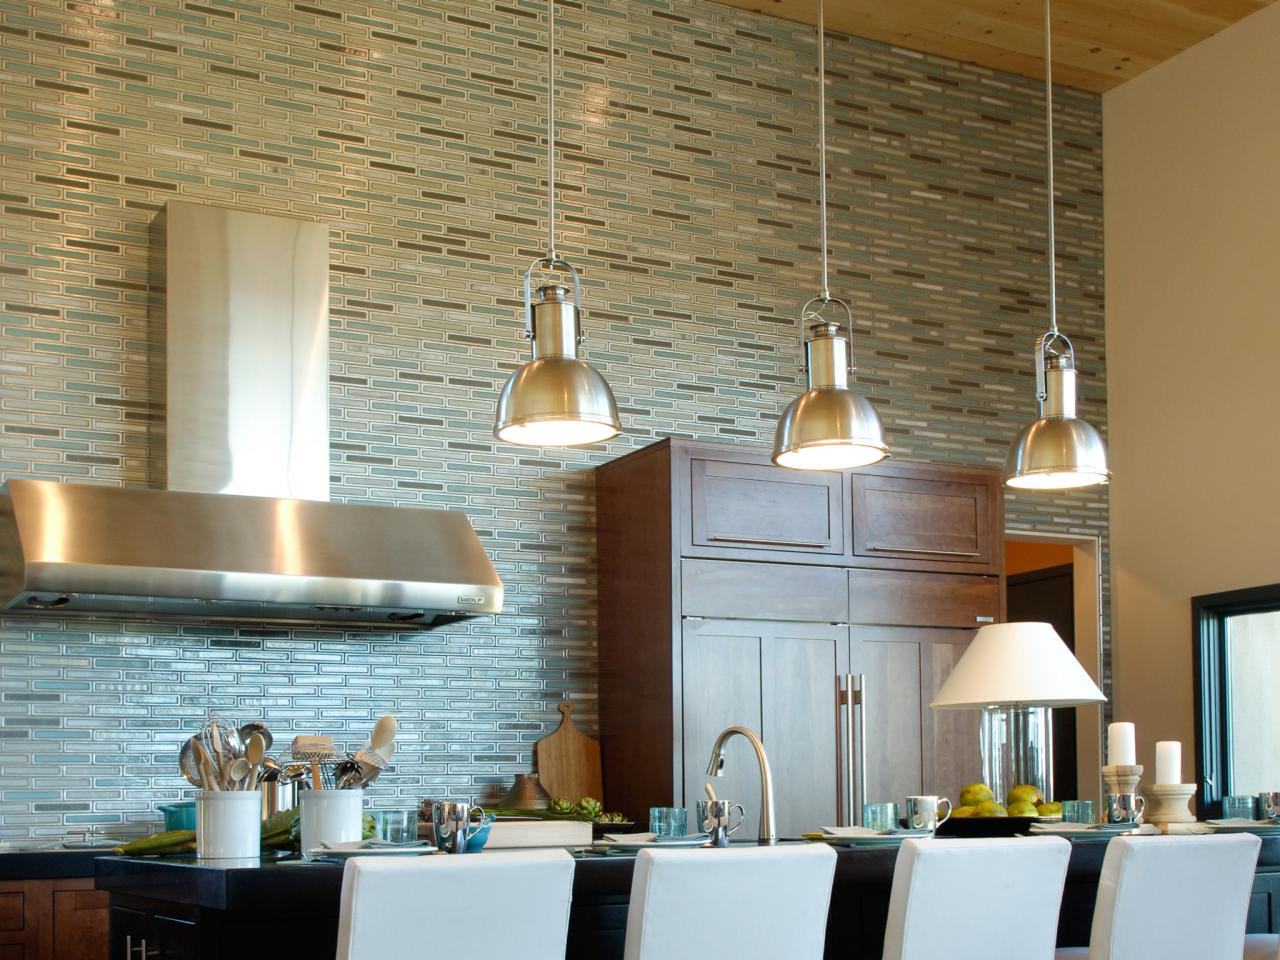 Backsplash Tile Ideas For Kitchen Pictures Part - 47: Add Amazing Kitchen Tile Ideas For Contemporary Kitchen Wih White Stools  And Black Island. Backsplash ...